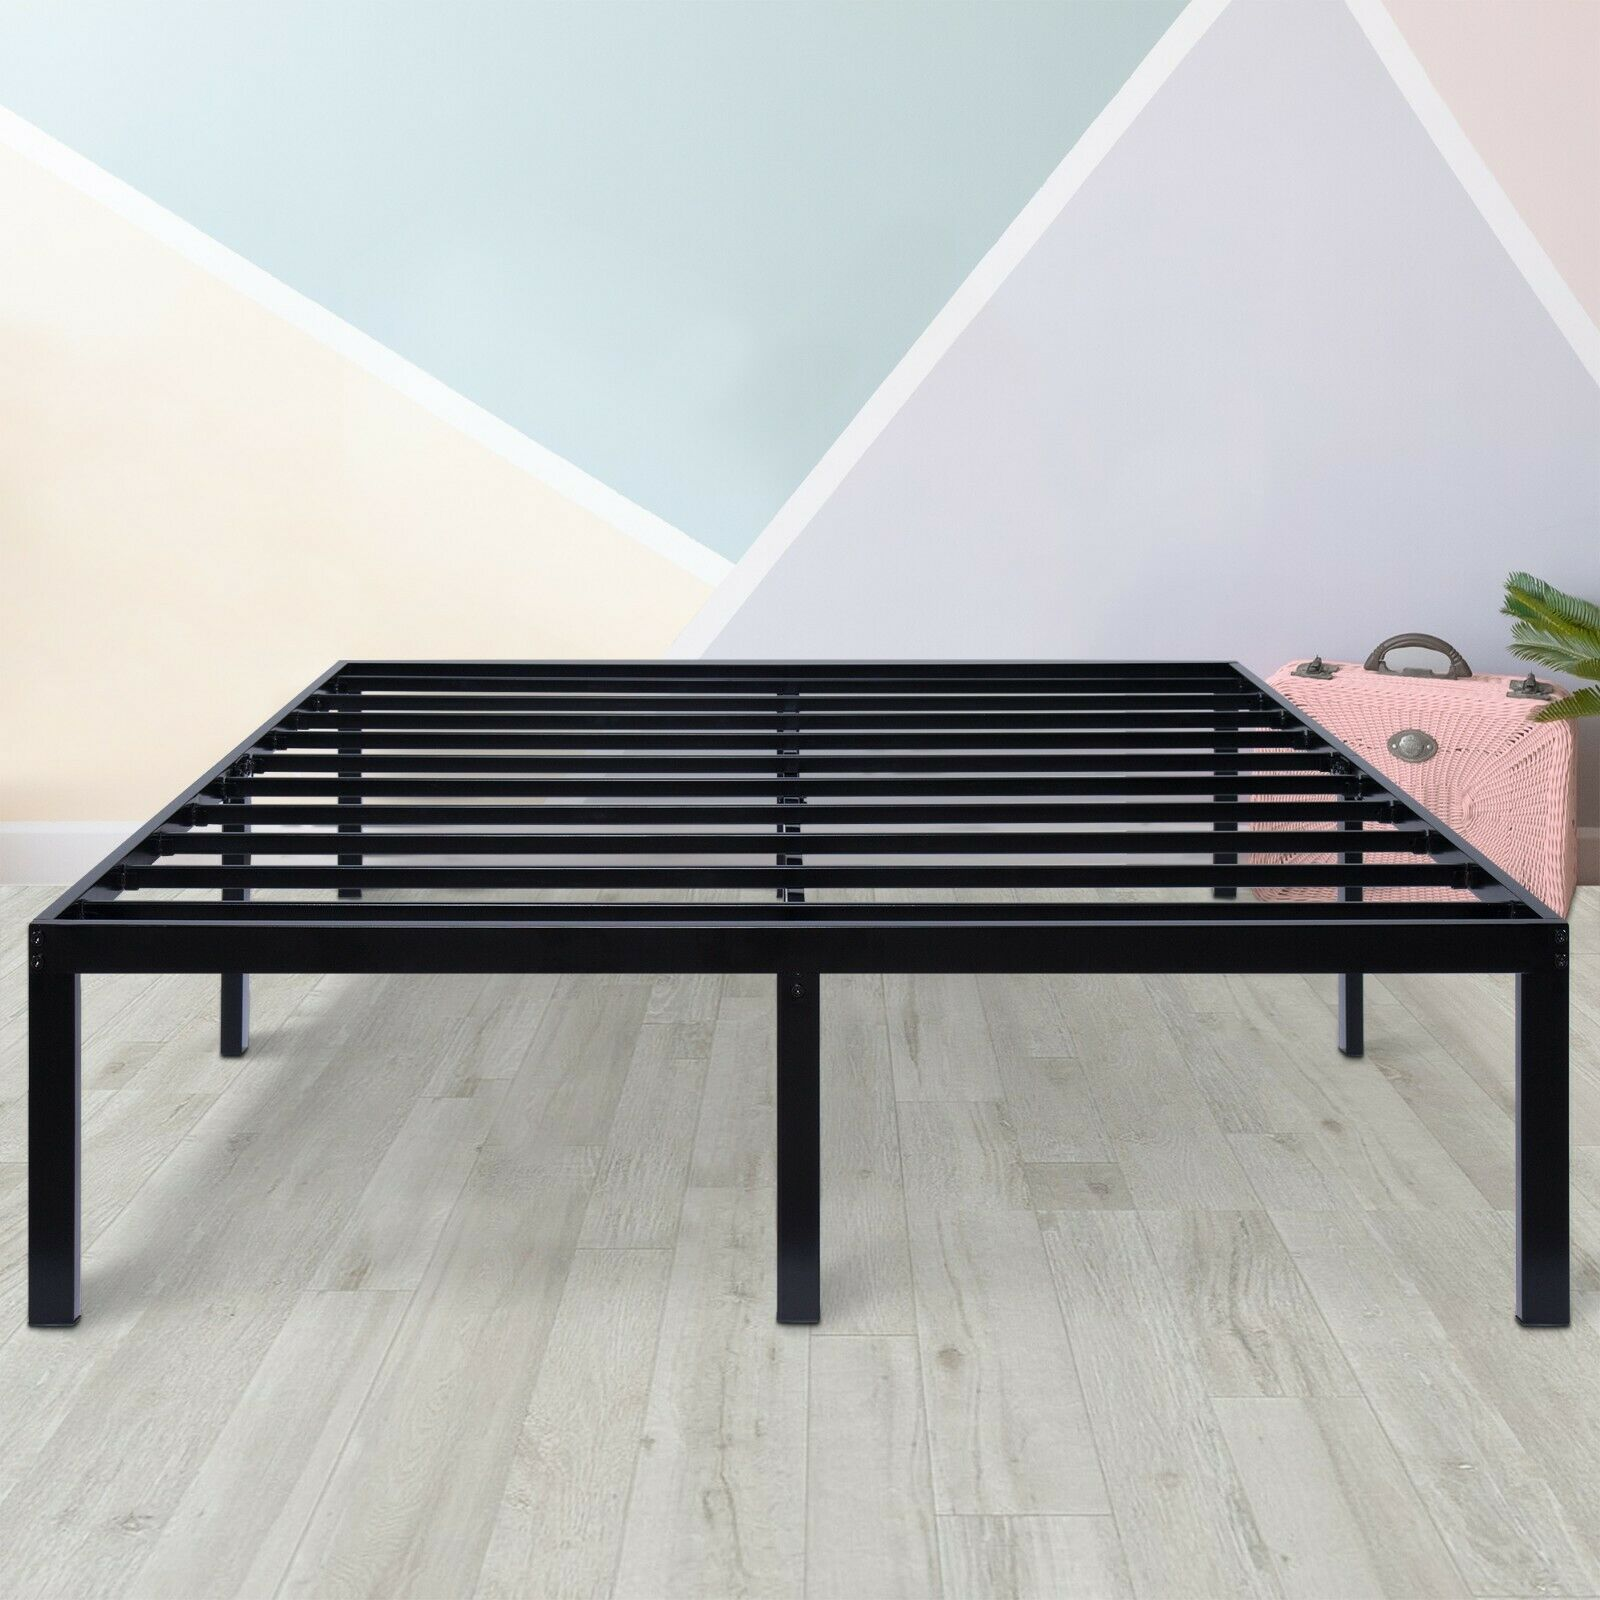 SLEEPLACE 16 Inch Tall Metal Bed Frame Easy Assembly Black T